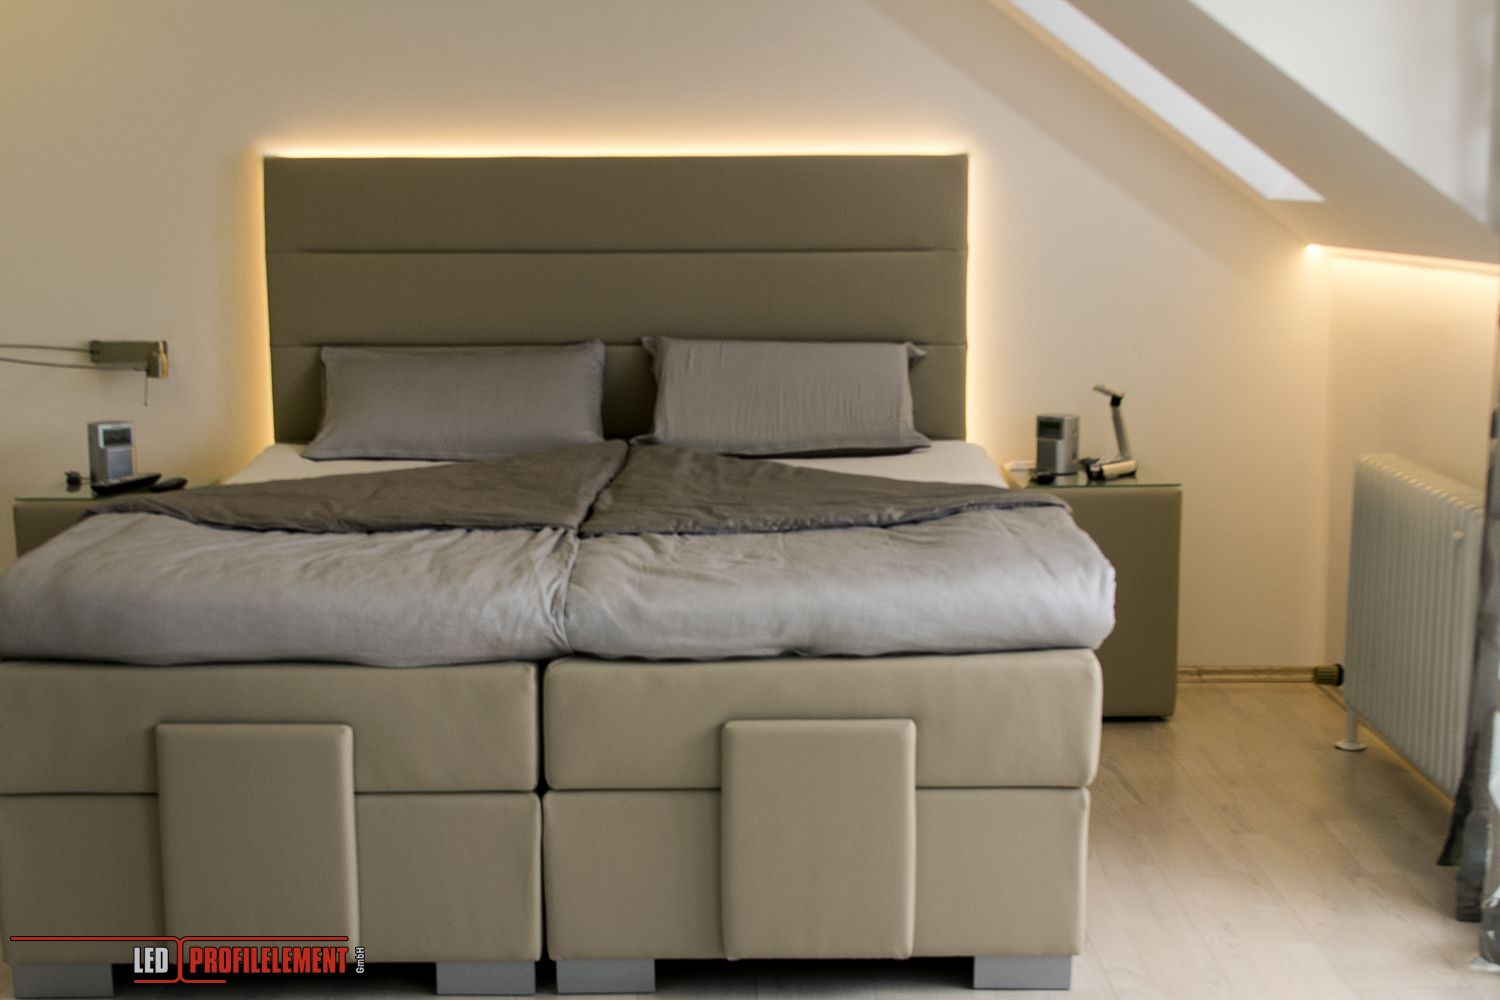 indirekte beleuchtung hinter dem bett www. Black Bedroom Furniture Sets. Home Design Ideas